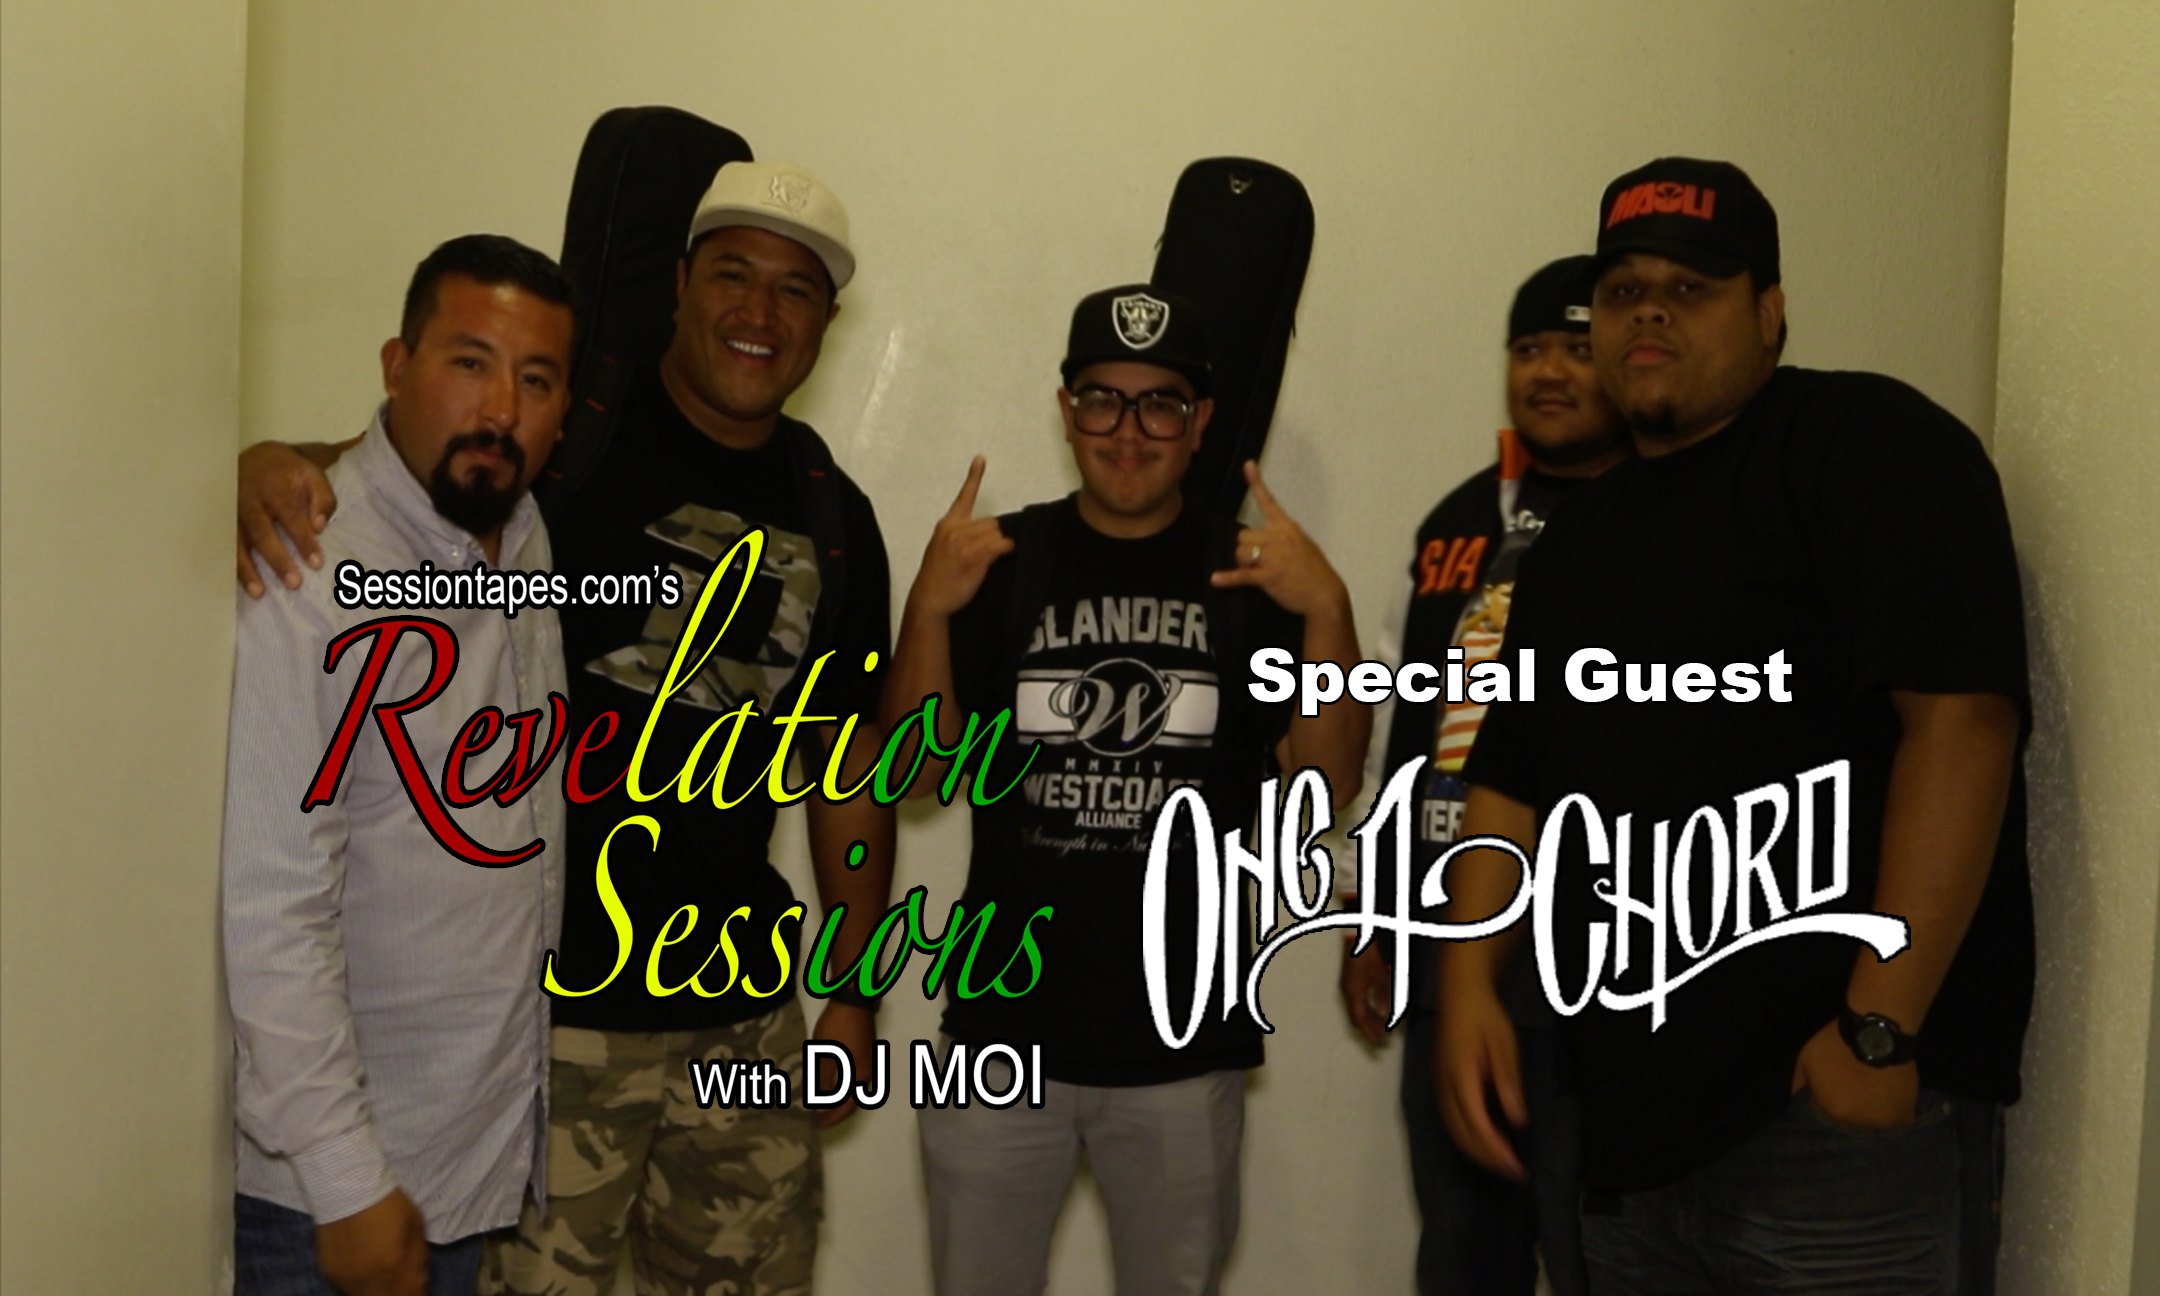 Revelation Sessions with DJ Moi w/ special guest One A-Chord